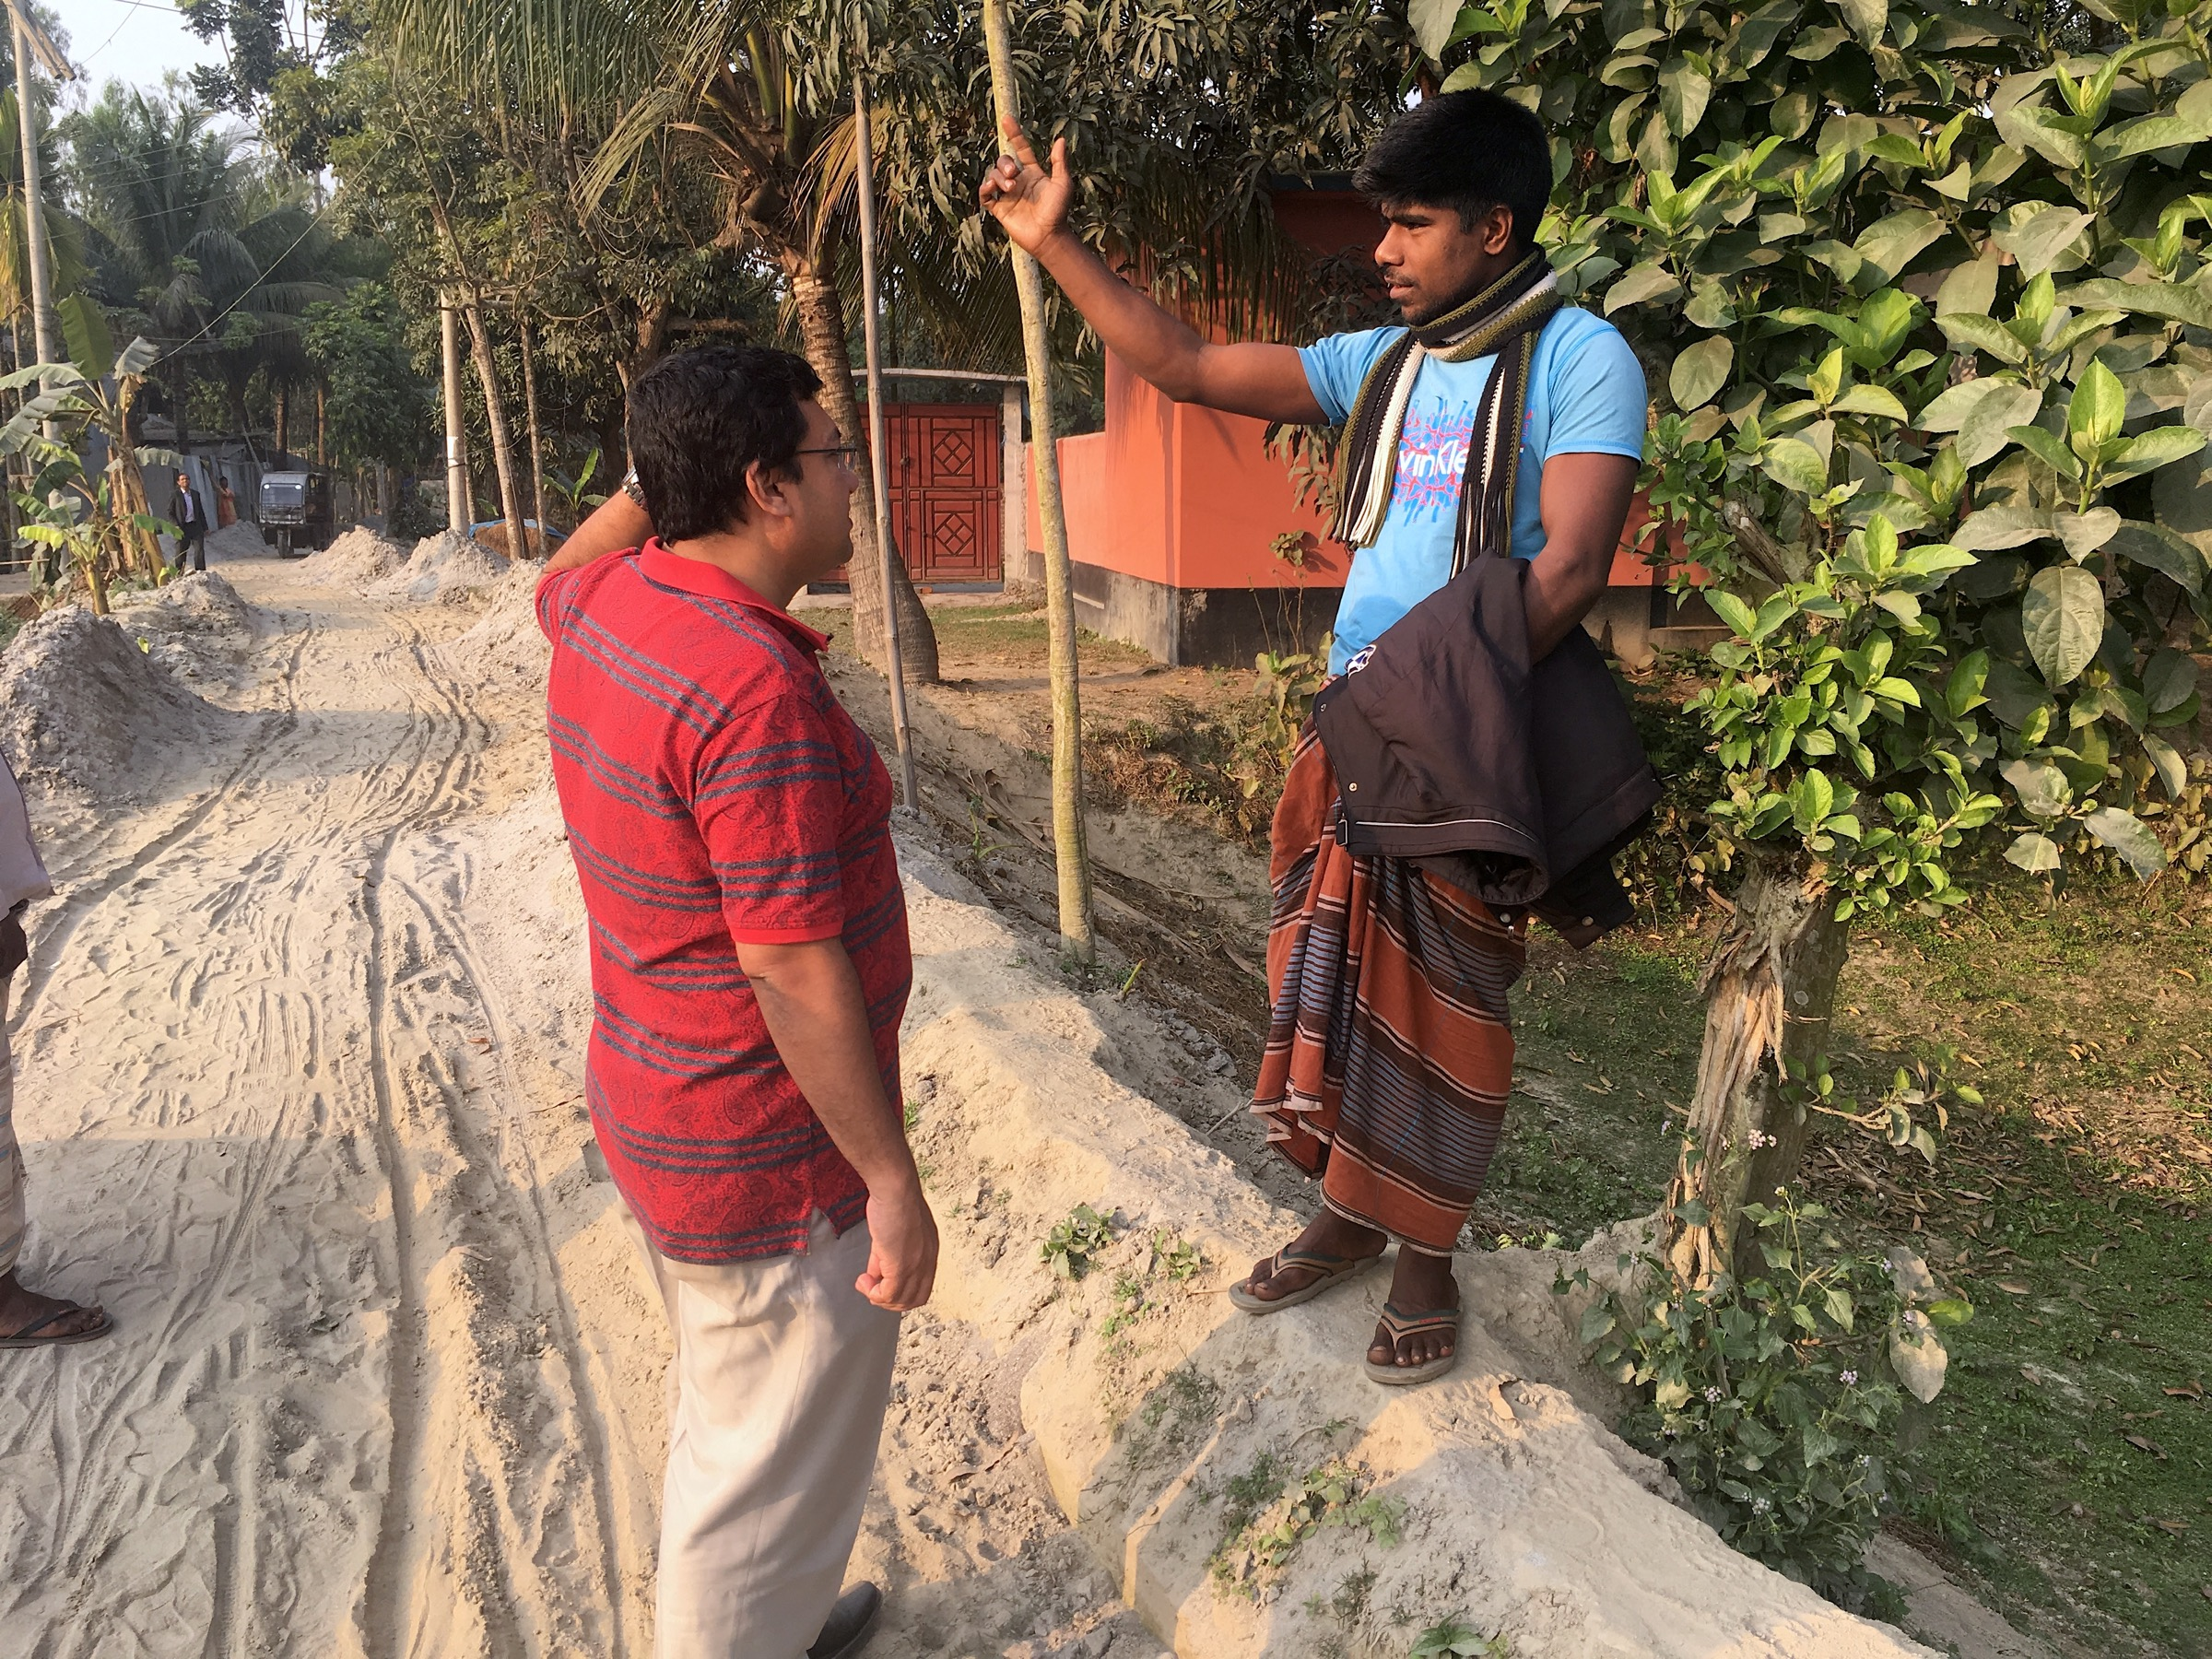 Physician Hossain M. S. Sazzad from ICDDR,B asks a resident of the village of Mohonpur for directions to the home of the local collector and seller of date palm sap. Photograph by Steven Bedard